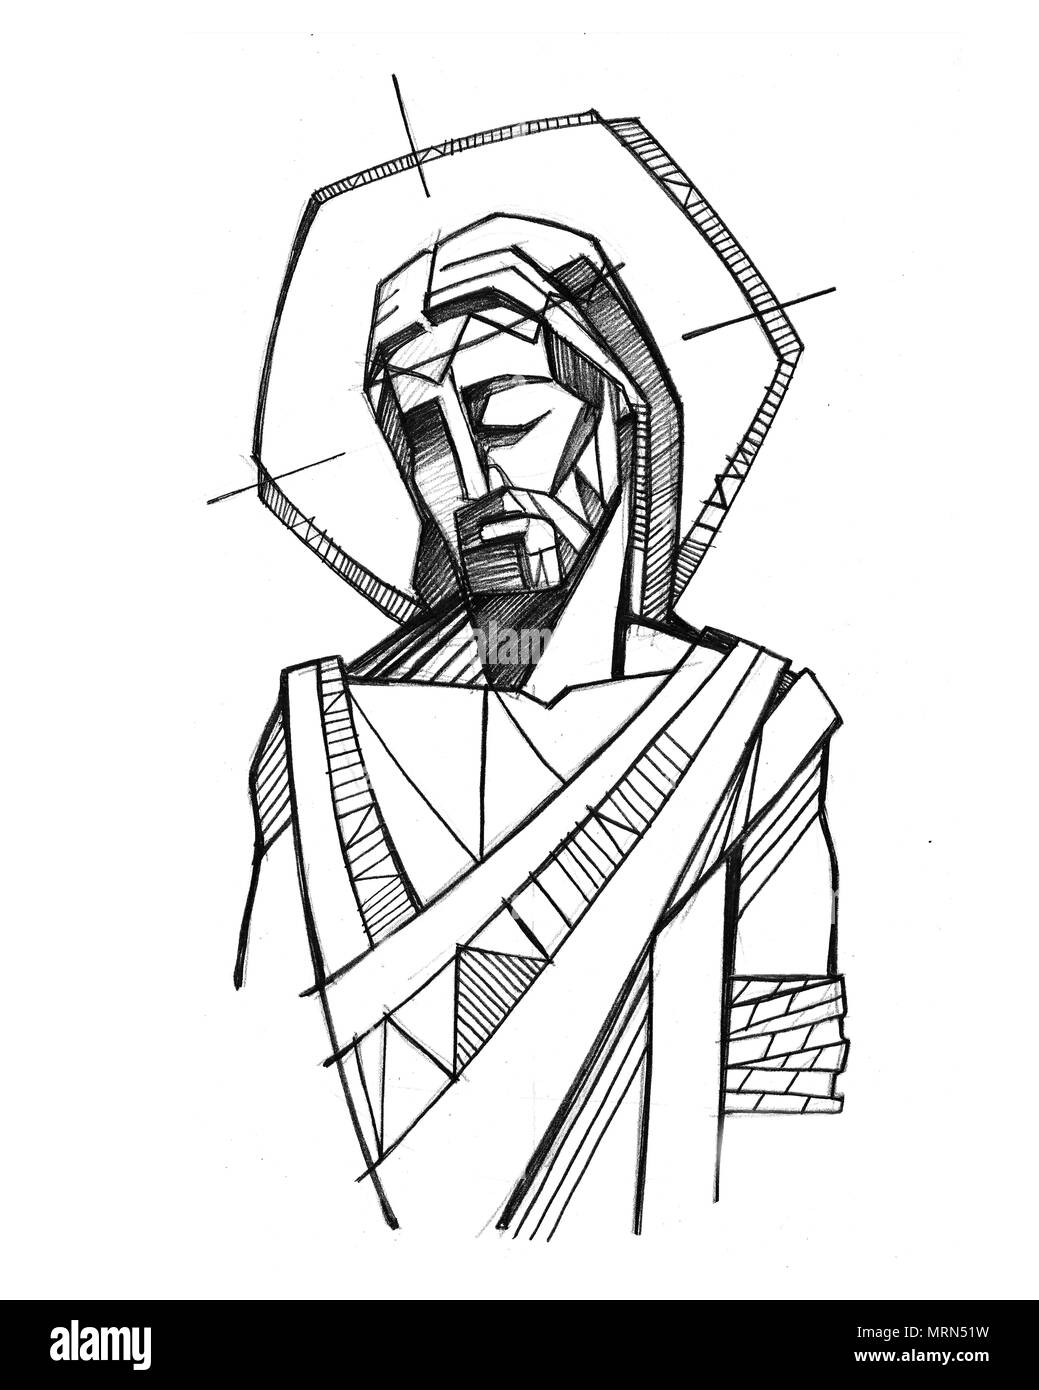 Hand drawn illustration or drawing of jesus christ at his passion